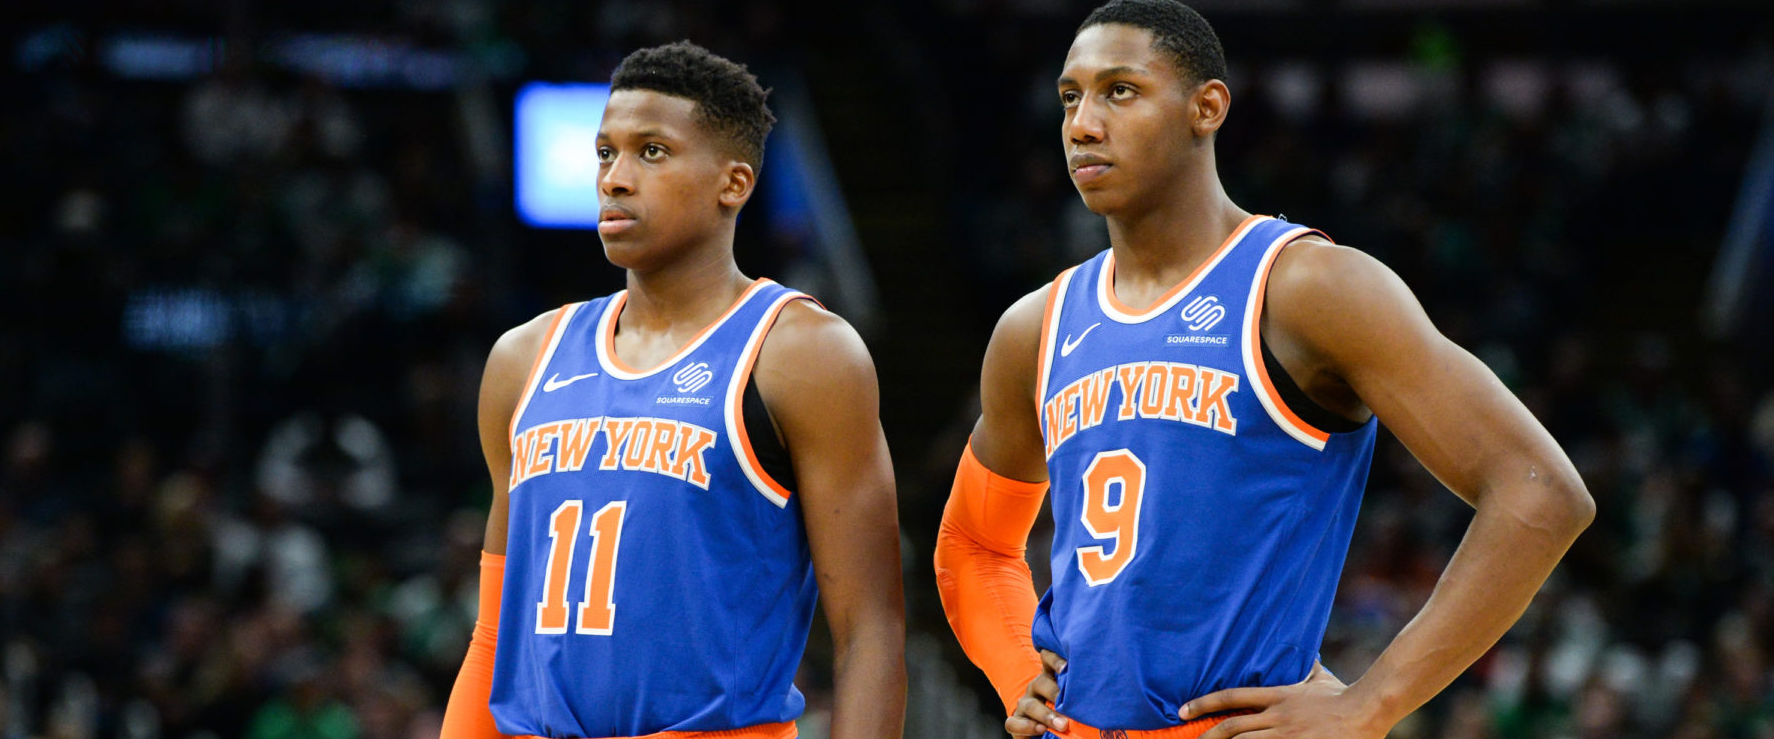 The Knicks Future Is Bright!